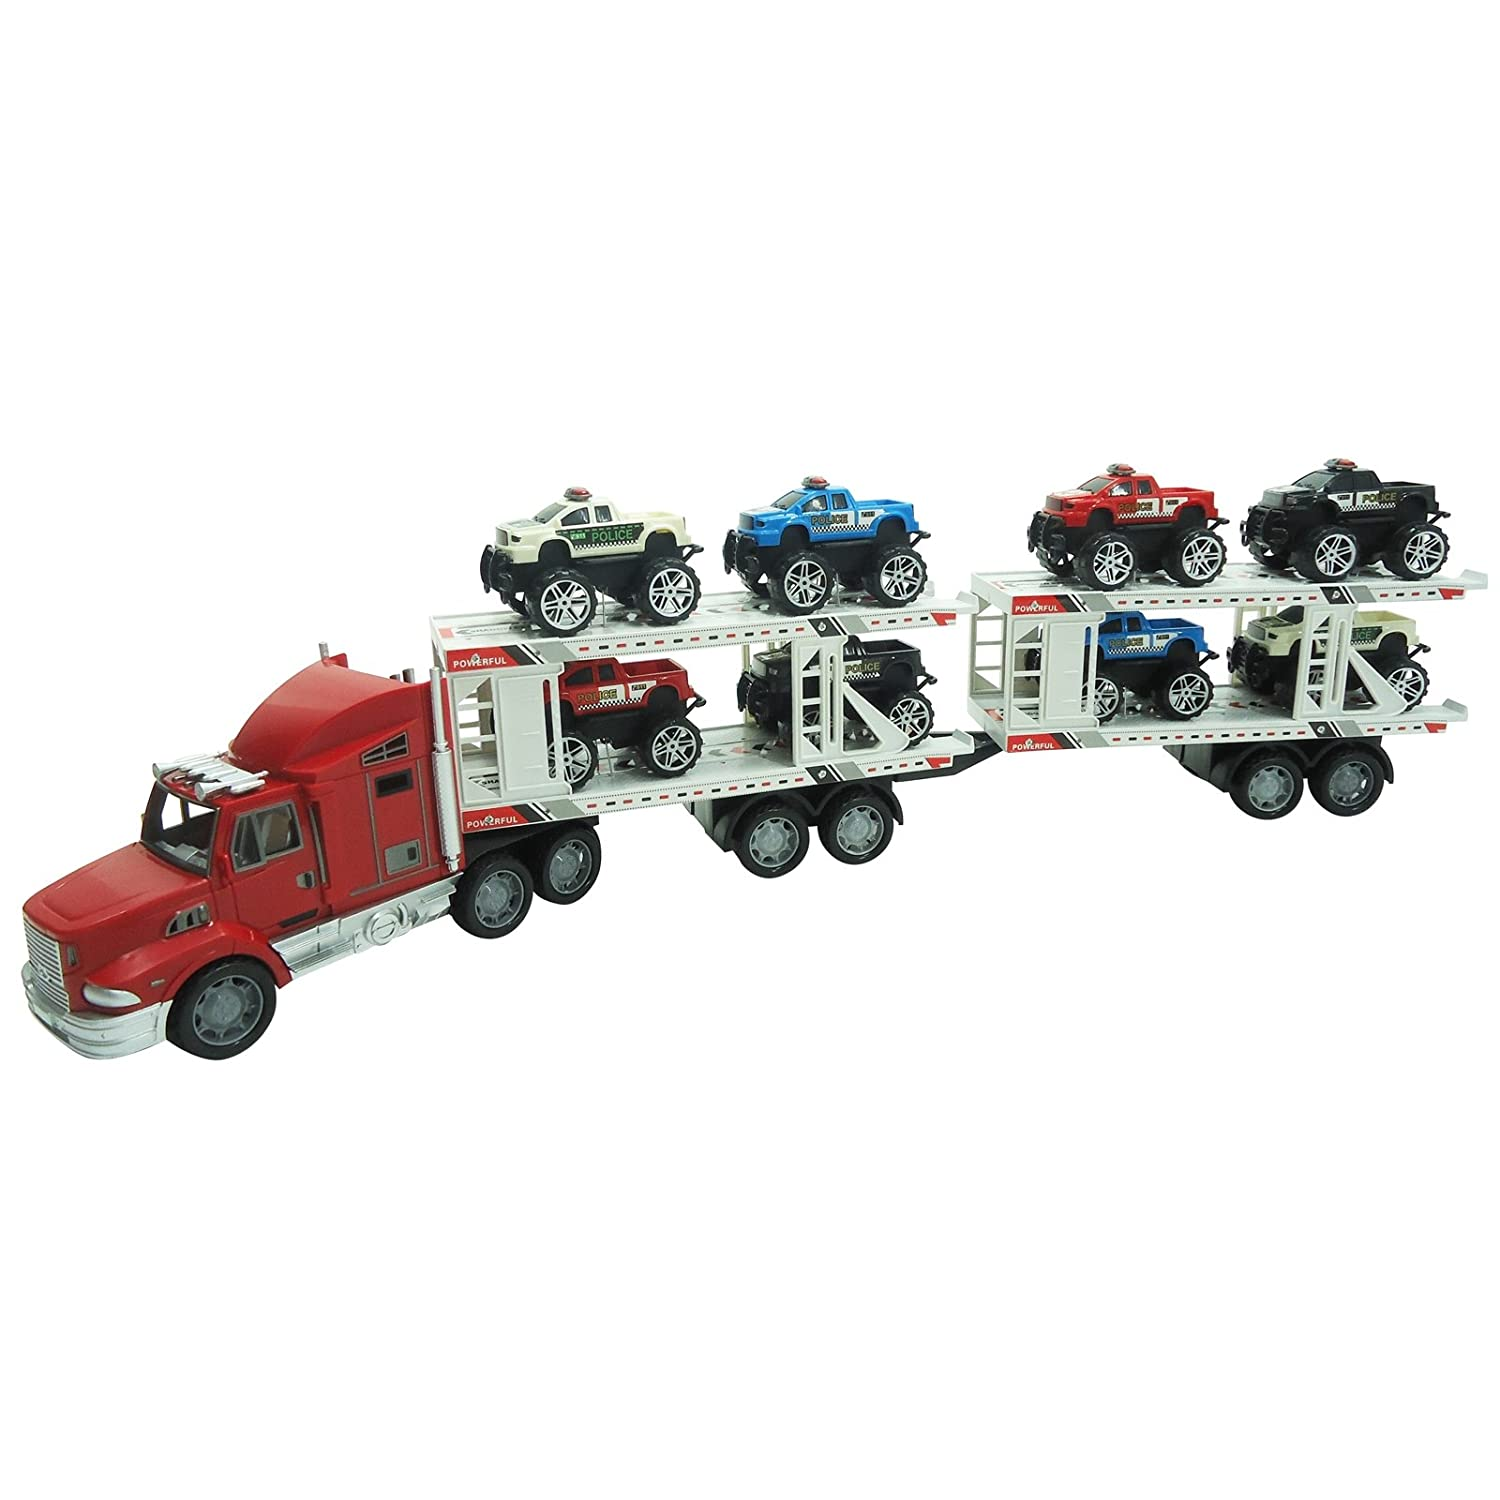 高品質の人気 ATV Superior Trailer Children's Kid's May Friction Toy B00T55V8T8 Truck Friction Ready To Run w/ 8 Toy ATVs, No Batteries Required (Colors May (Assorted) 2 Trailer B00T55V8T8, セレクトショップ JACKPOT STORE:fc8ab319 --- a0267596.xsph.ru